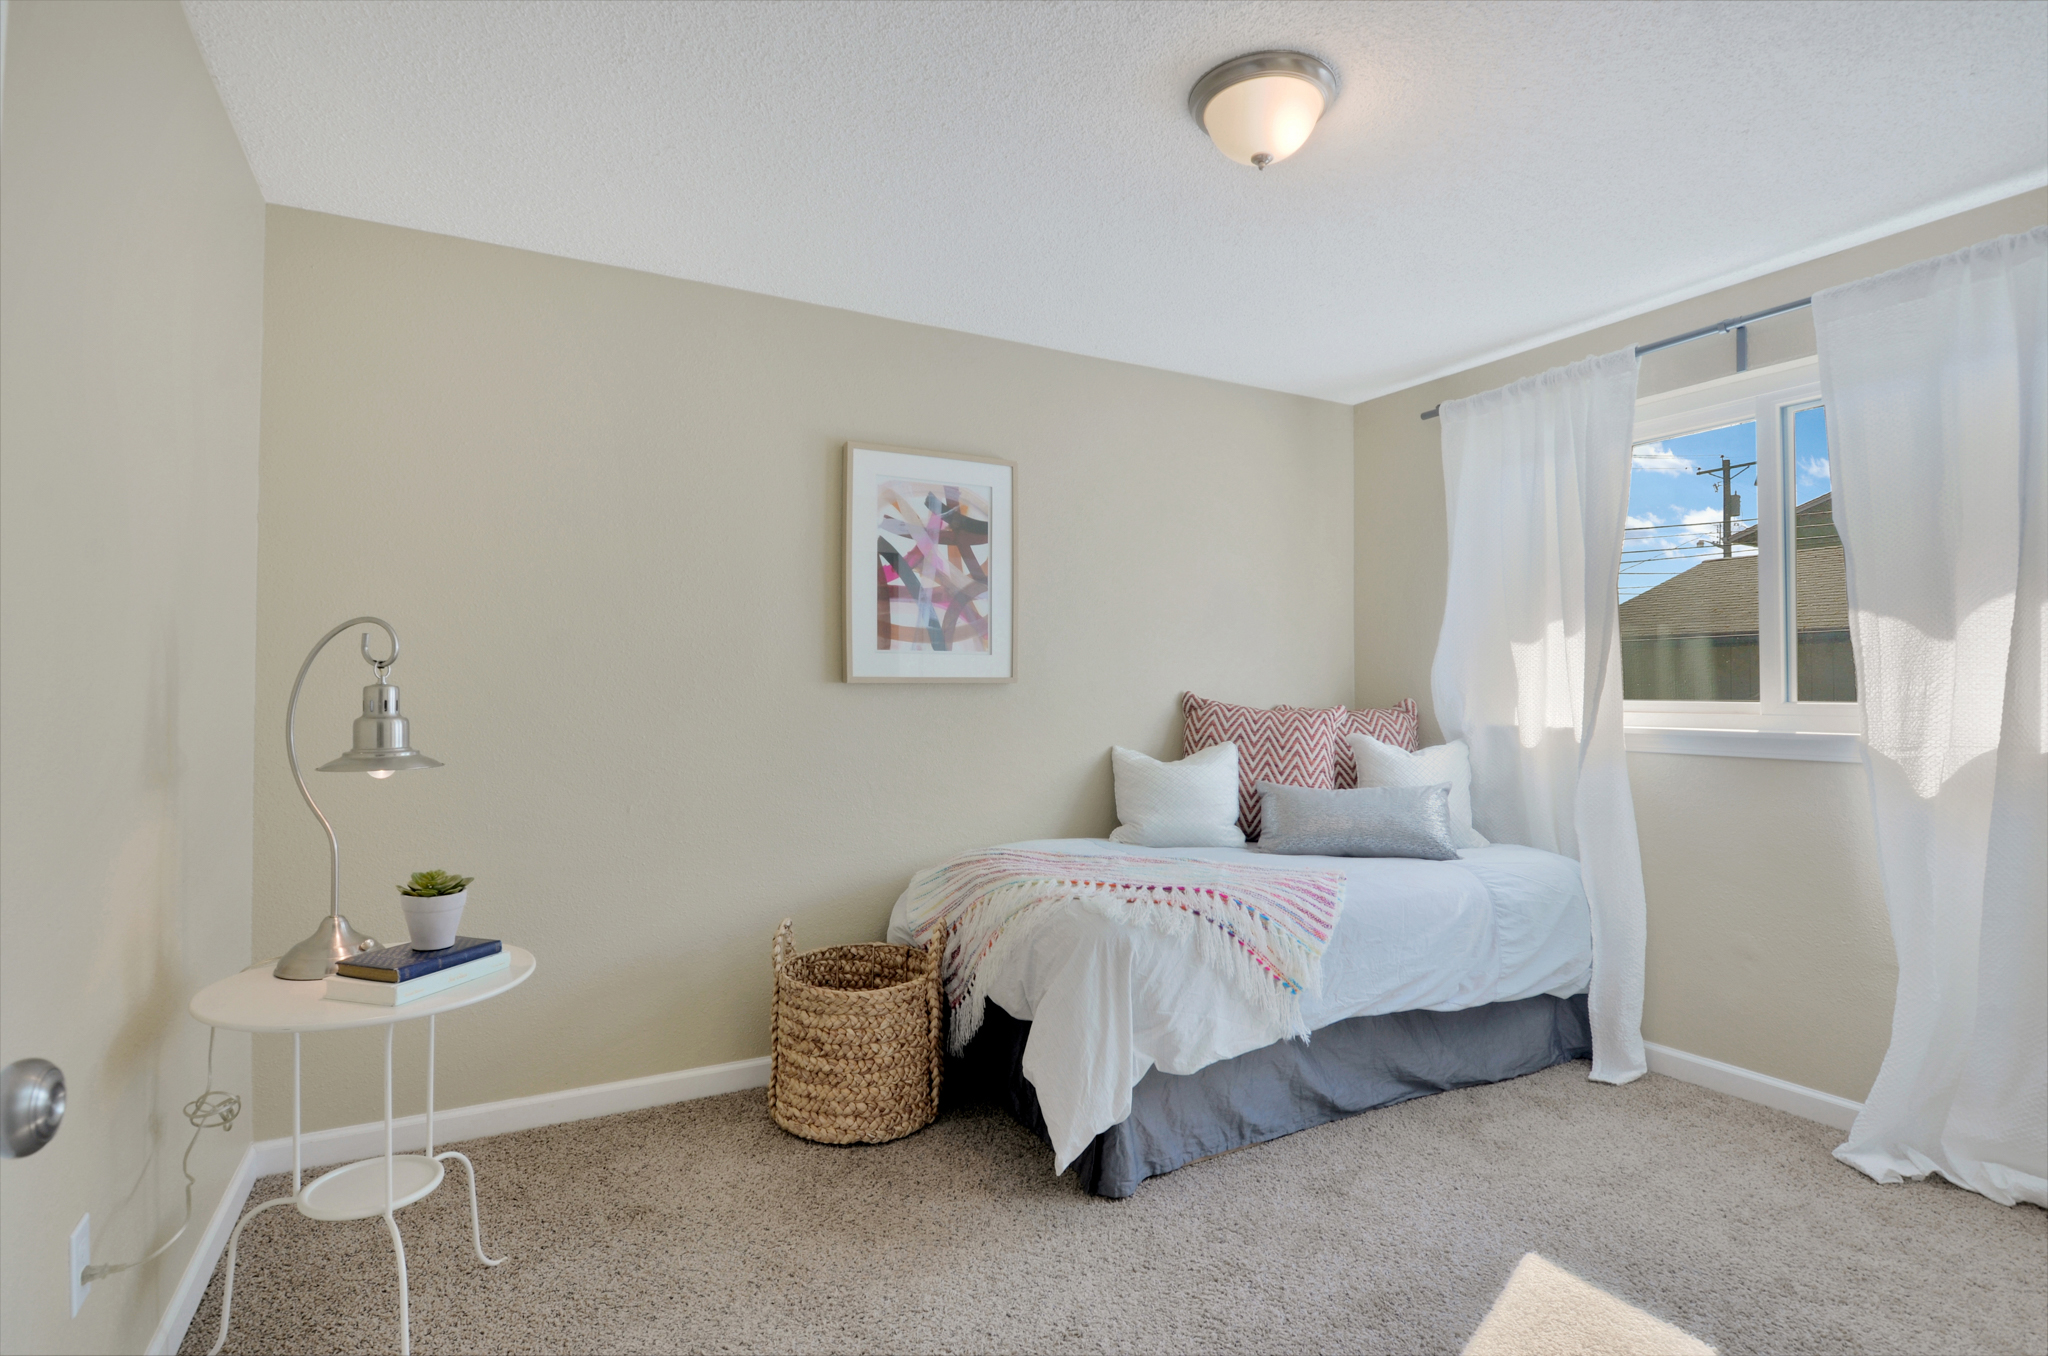 Find 2 additional bedrooms off the hallway with easy access to a full bathroom. Comfortable and carpeted these bedrooms overlook the side yard and are perfect for kids, housemates, or guests.